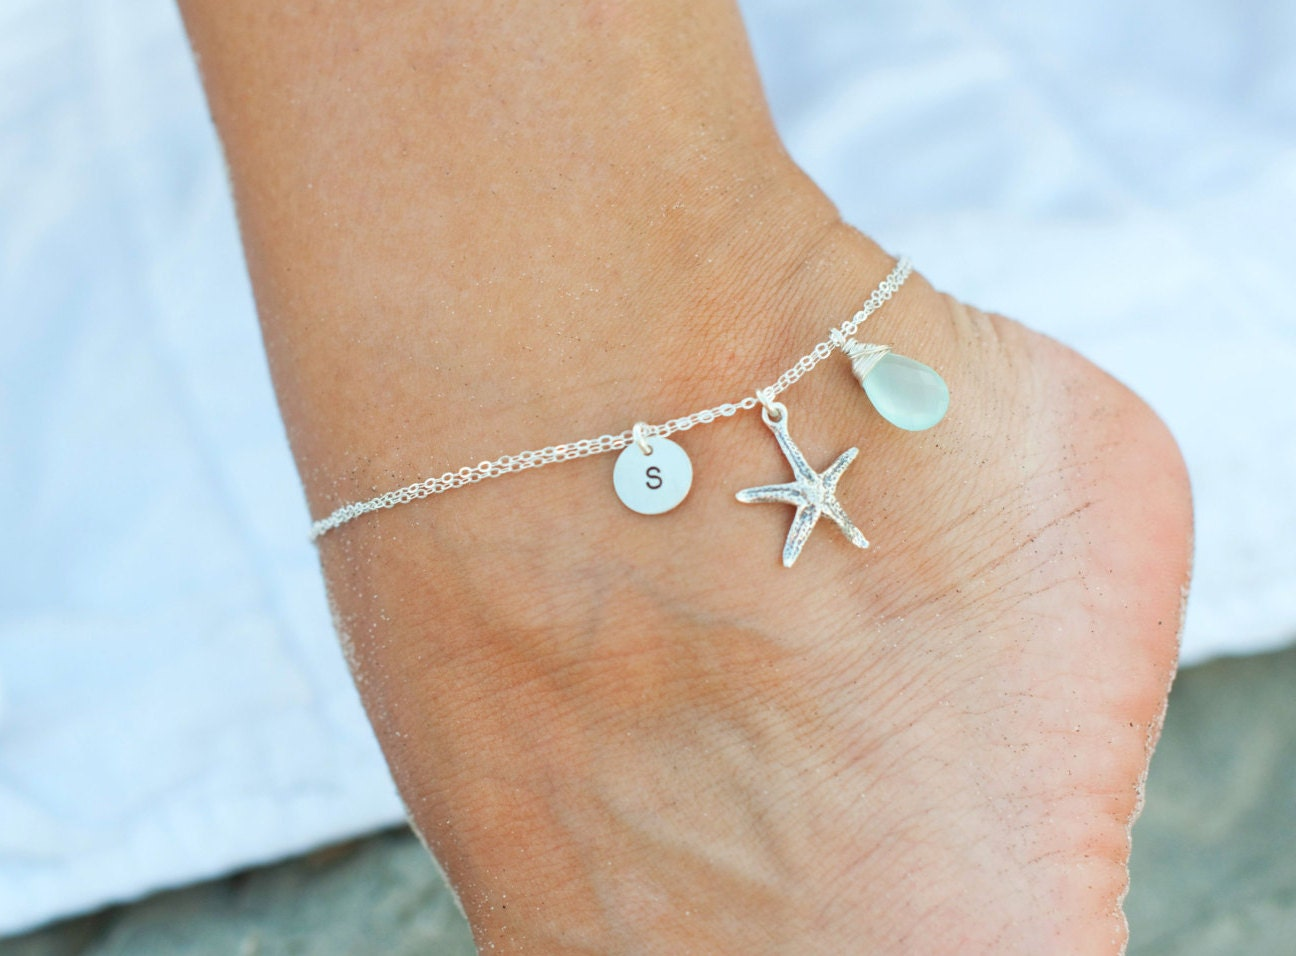 charm charms bracelets anklet ankle appl with cut tiny bracelet chain diamond bling silver cross jewelry